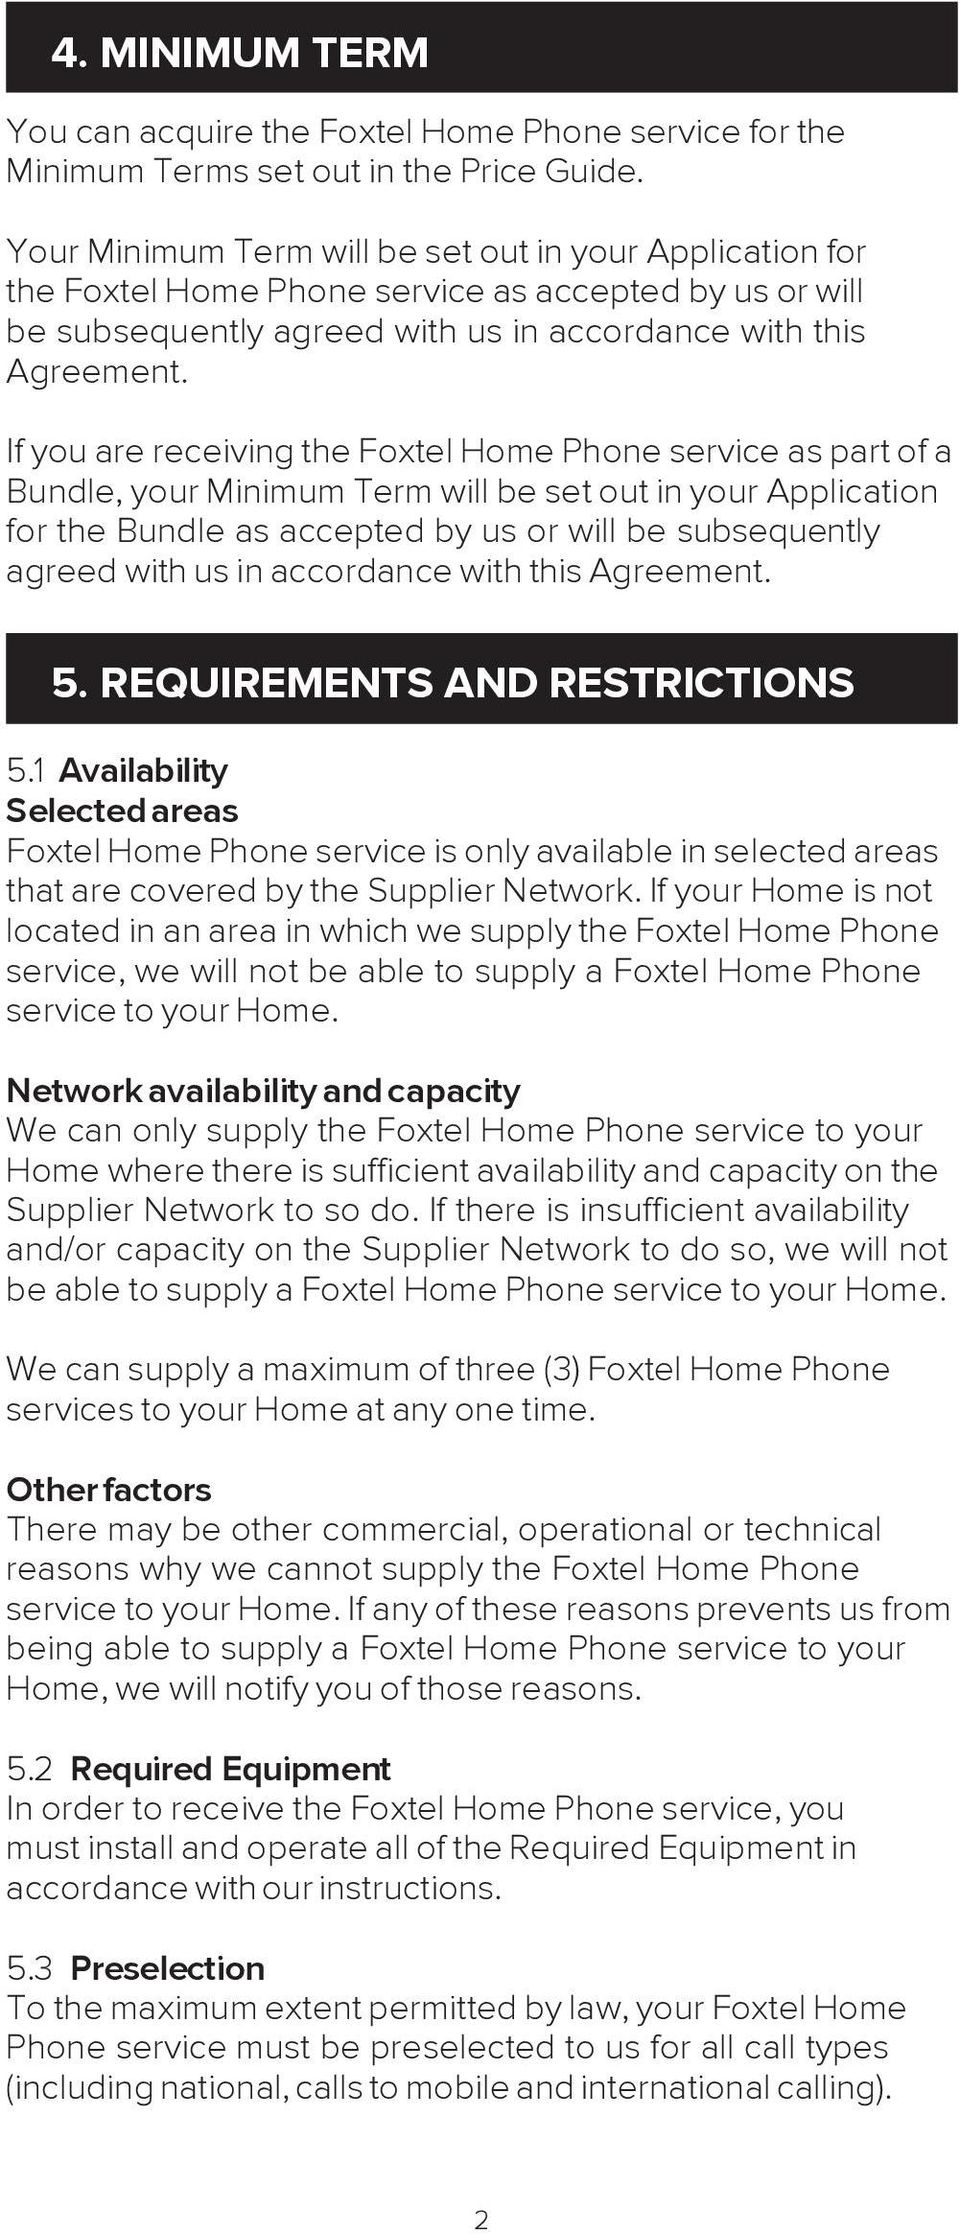 If you are receiving the Foxtel Home Phone service as part of a Bundle, your Minimum Term will be set out in your Application for the Bundle as accepted by us or will be subsequently agreed with us